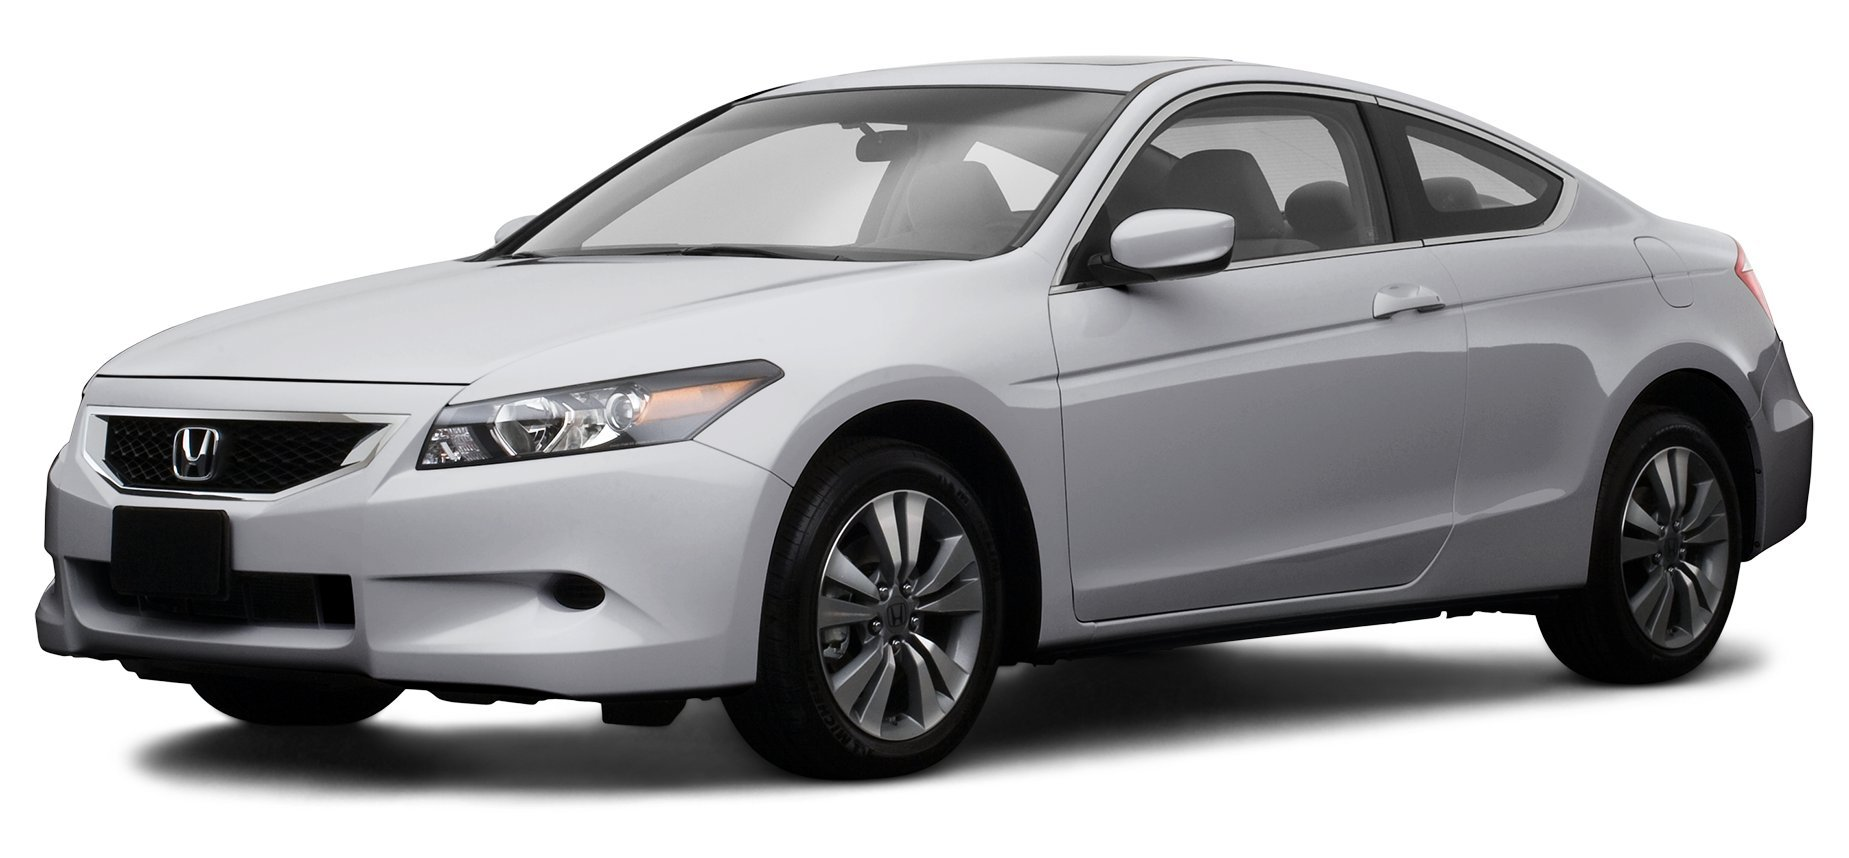 2009 honda accord reviews images and specs for Honda accord 4 cylinder